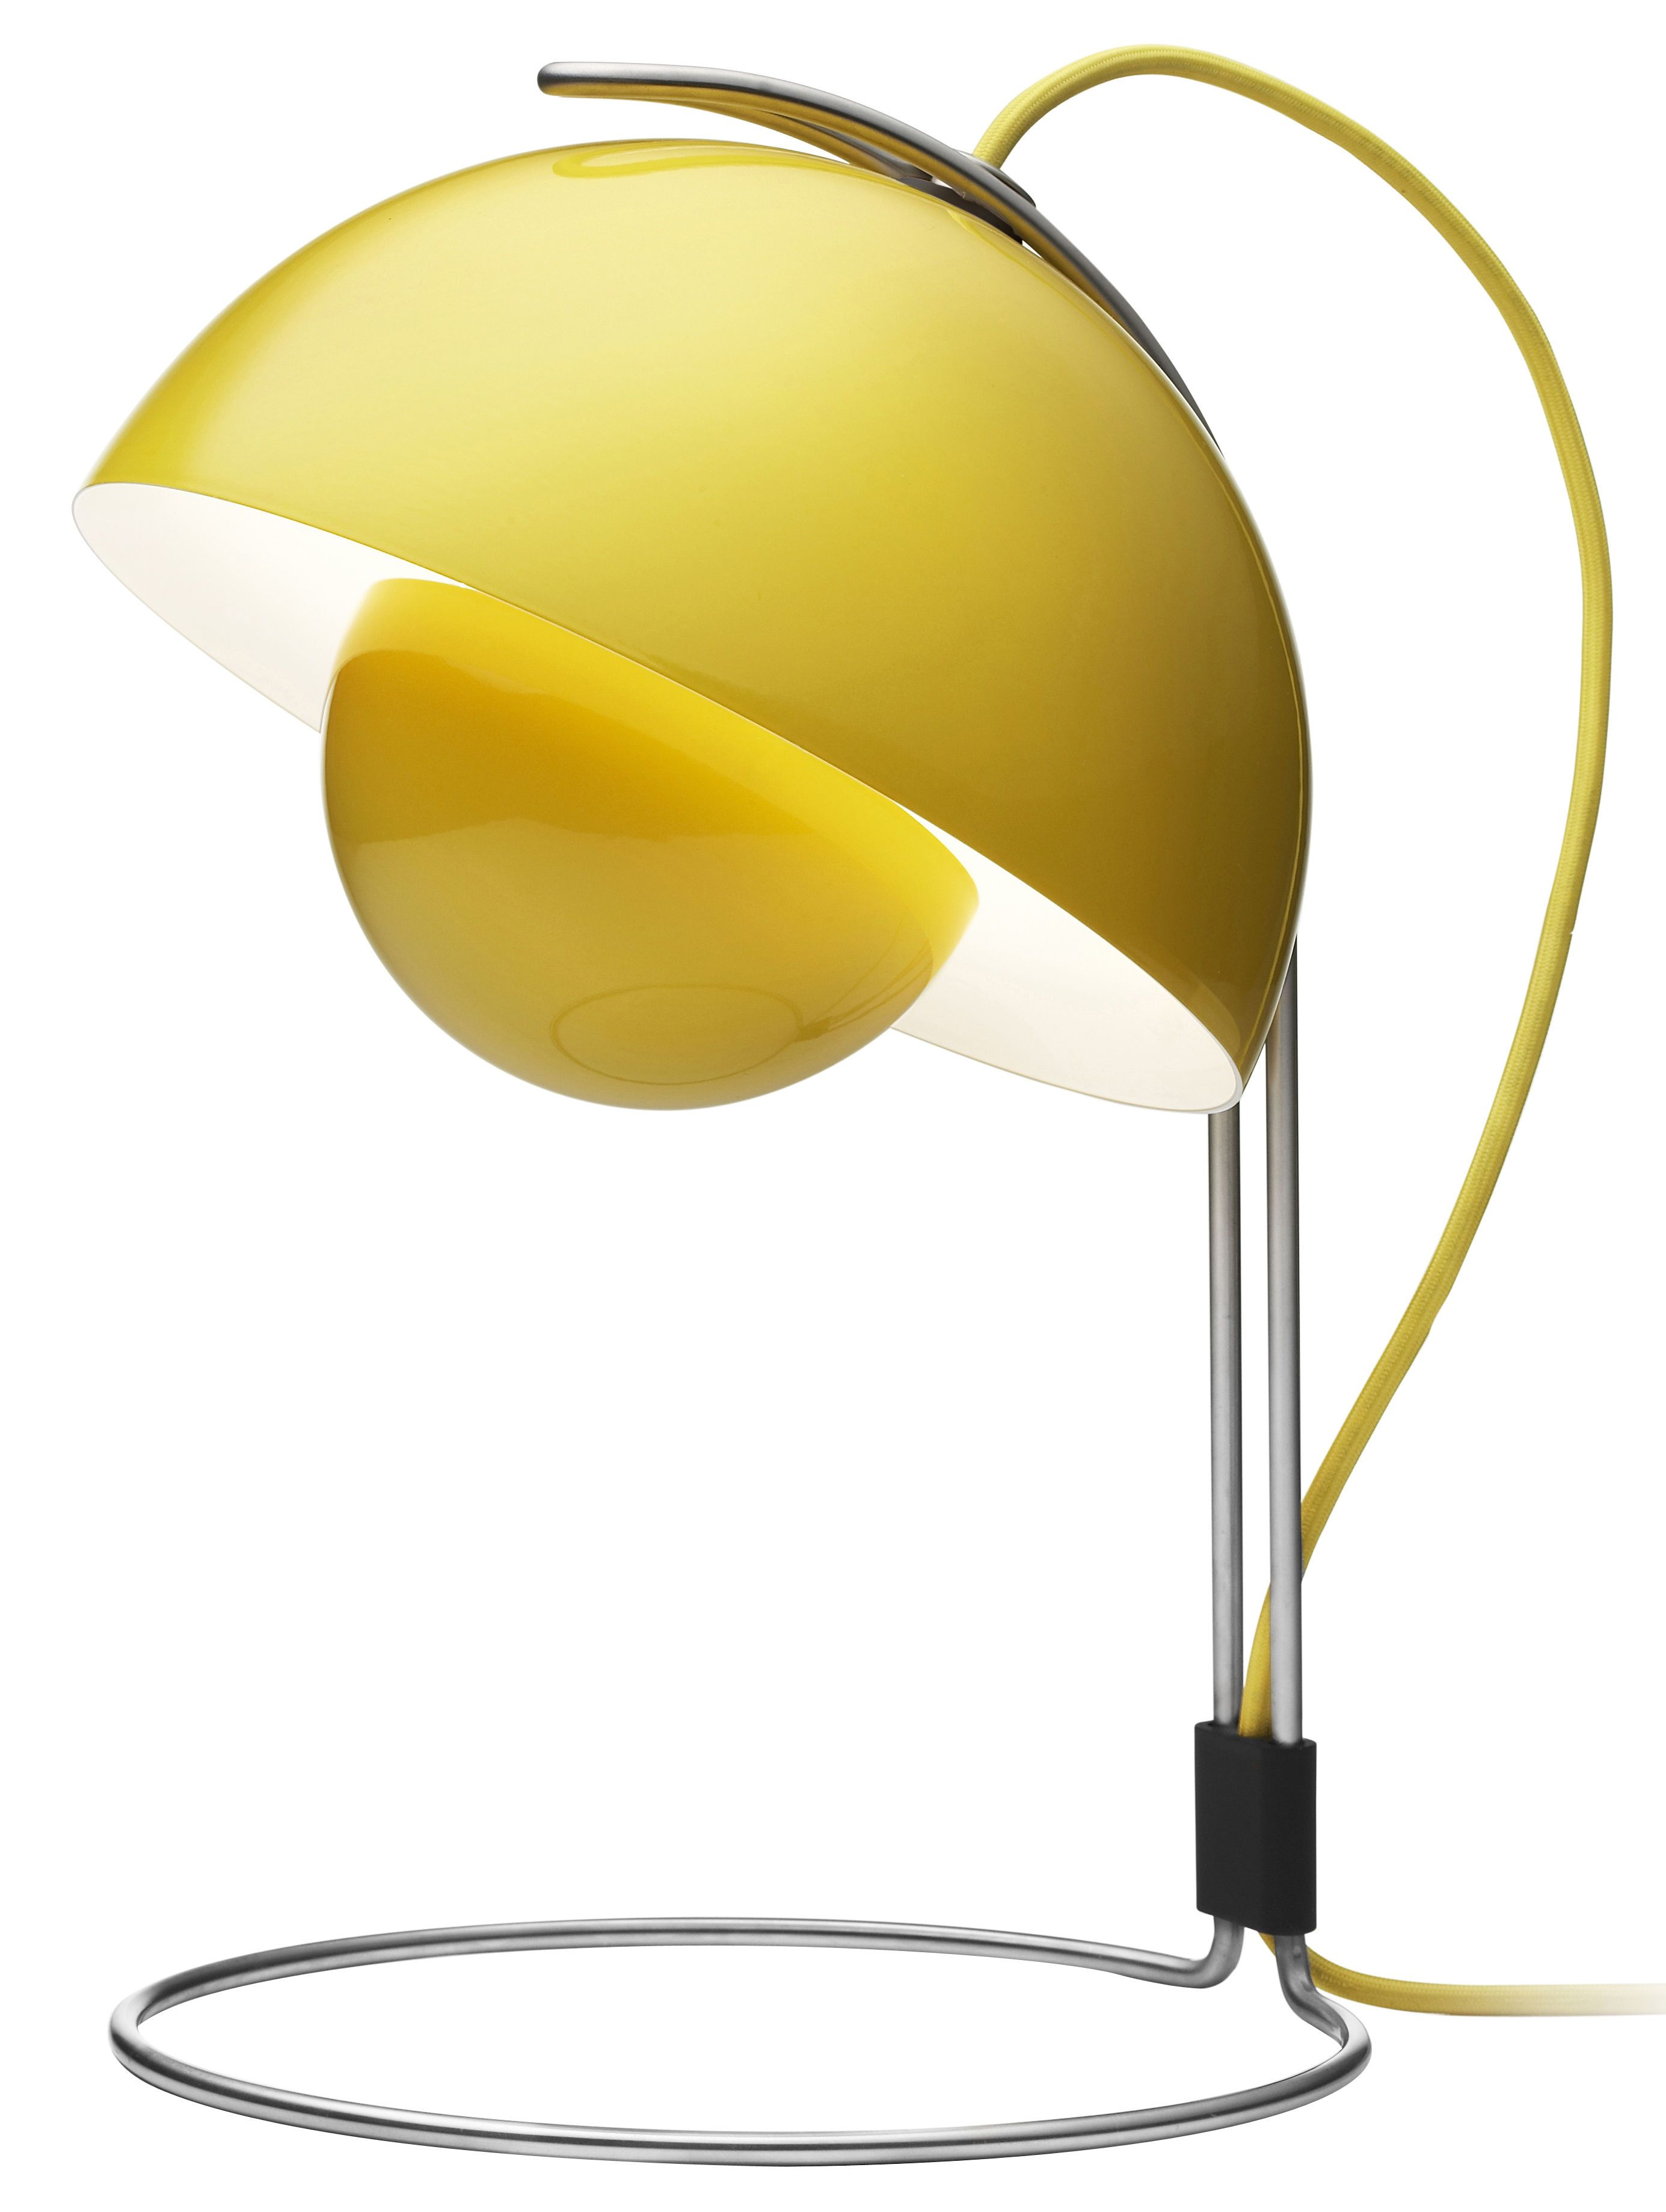 Tradition Flowerpot Vp4 Table Lamp Yellow Made In Design Uk Table Lamp Lamp I Like Lamp